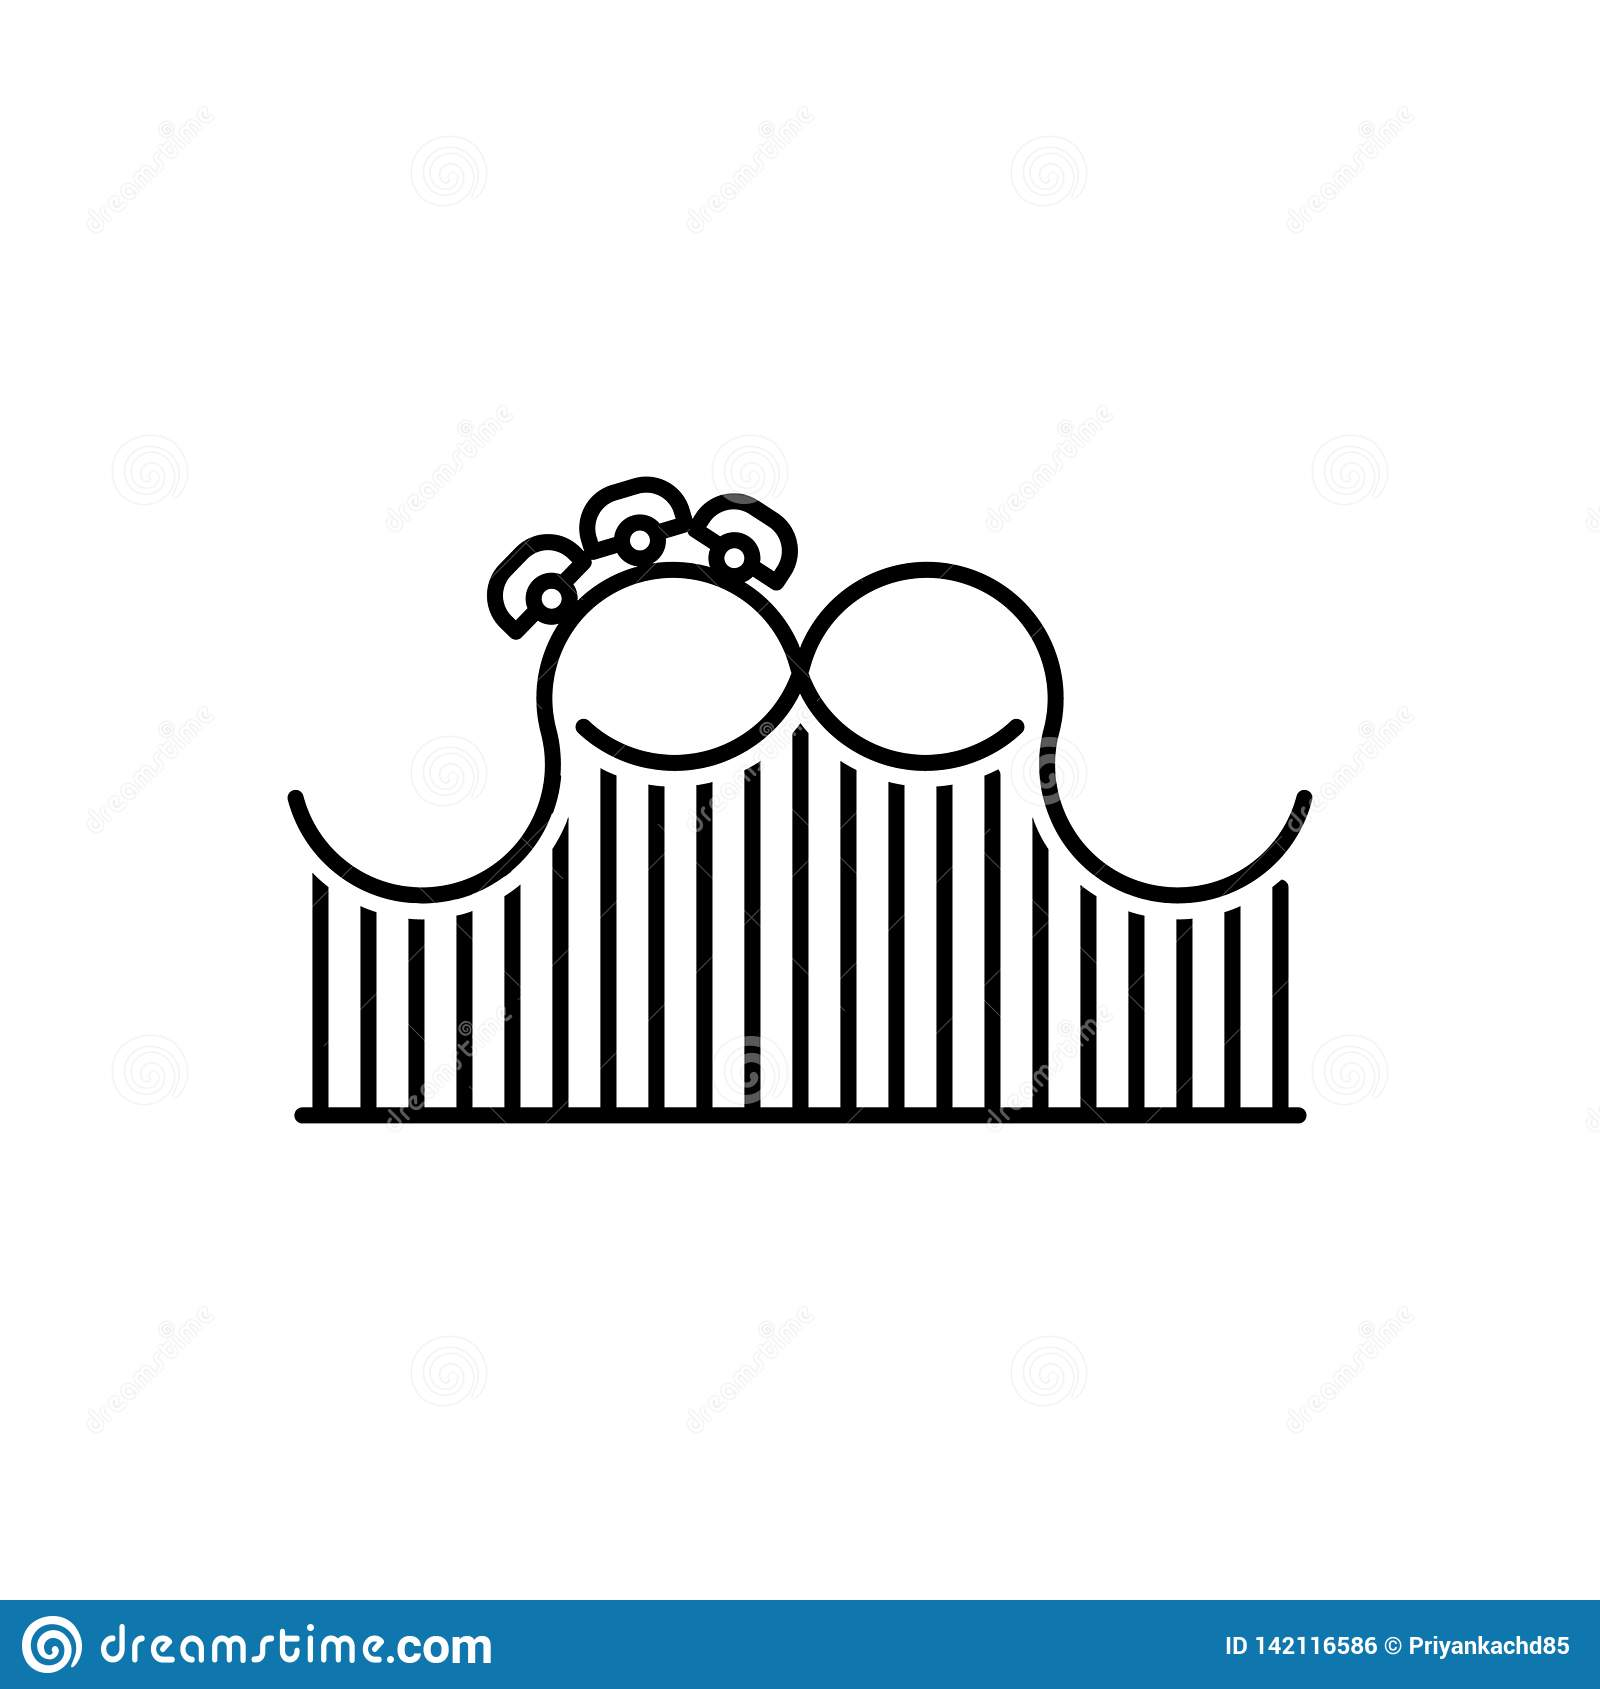 Black line icon for Roller, Coaster and funfair